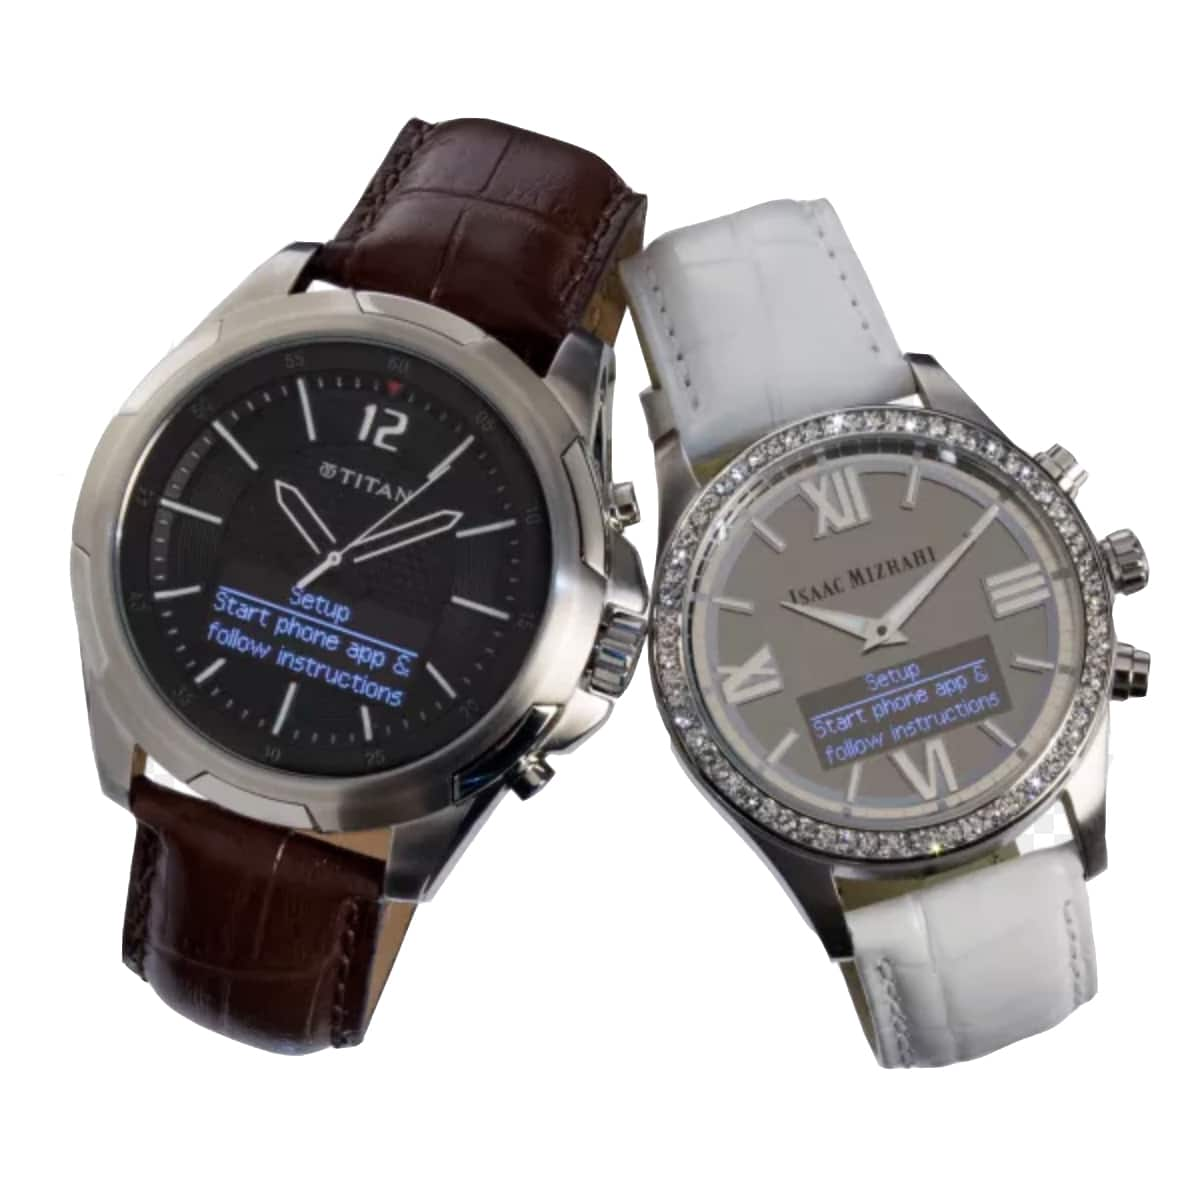 Isaac Mizrahi & Titan Men's & Women's HP Smartwatch for Android & iOS $39 @ meh